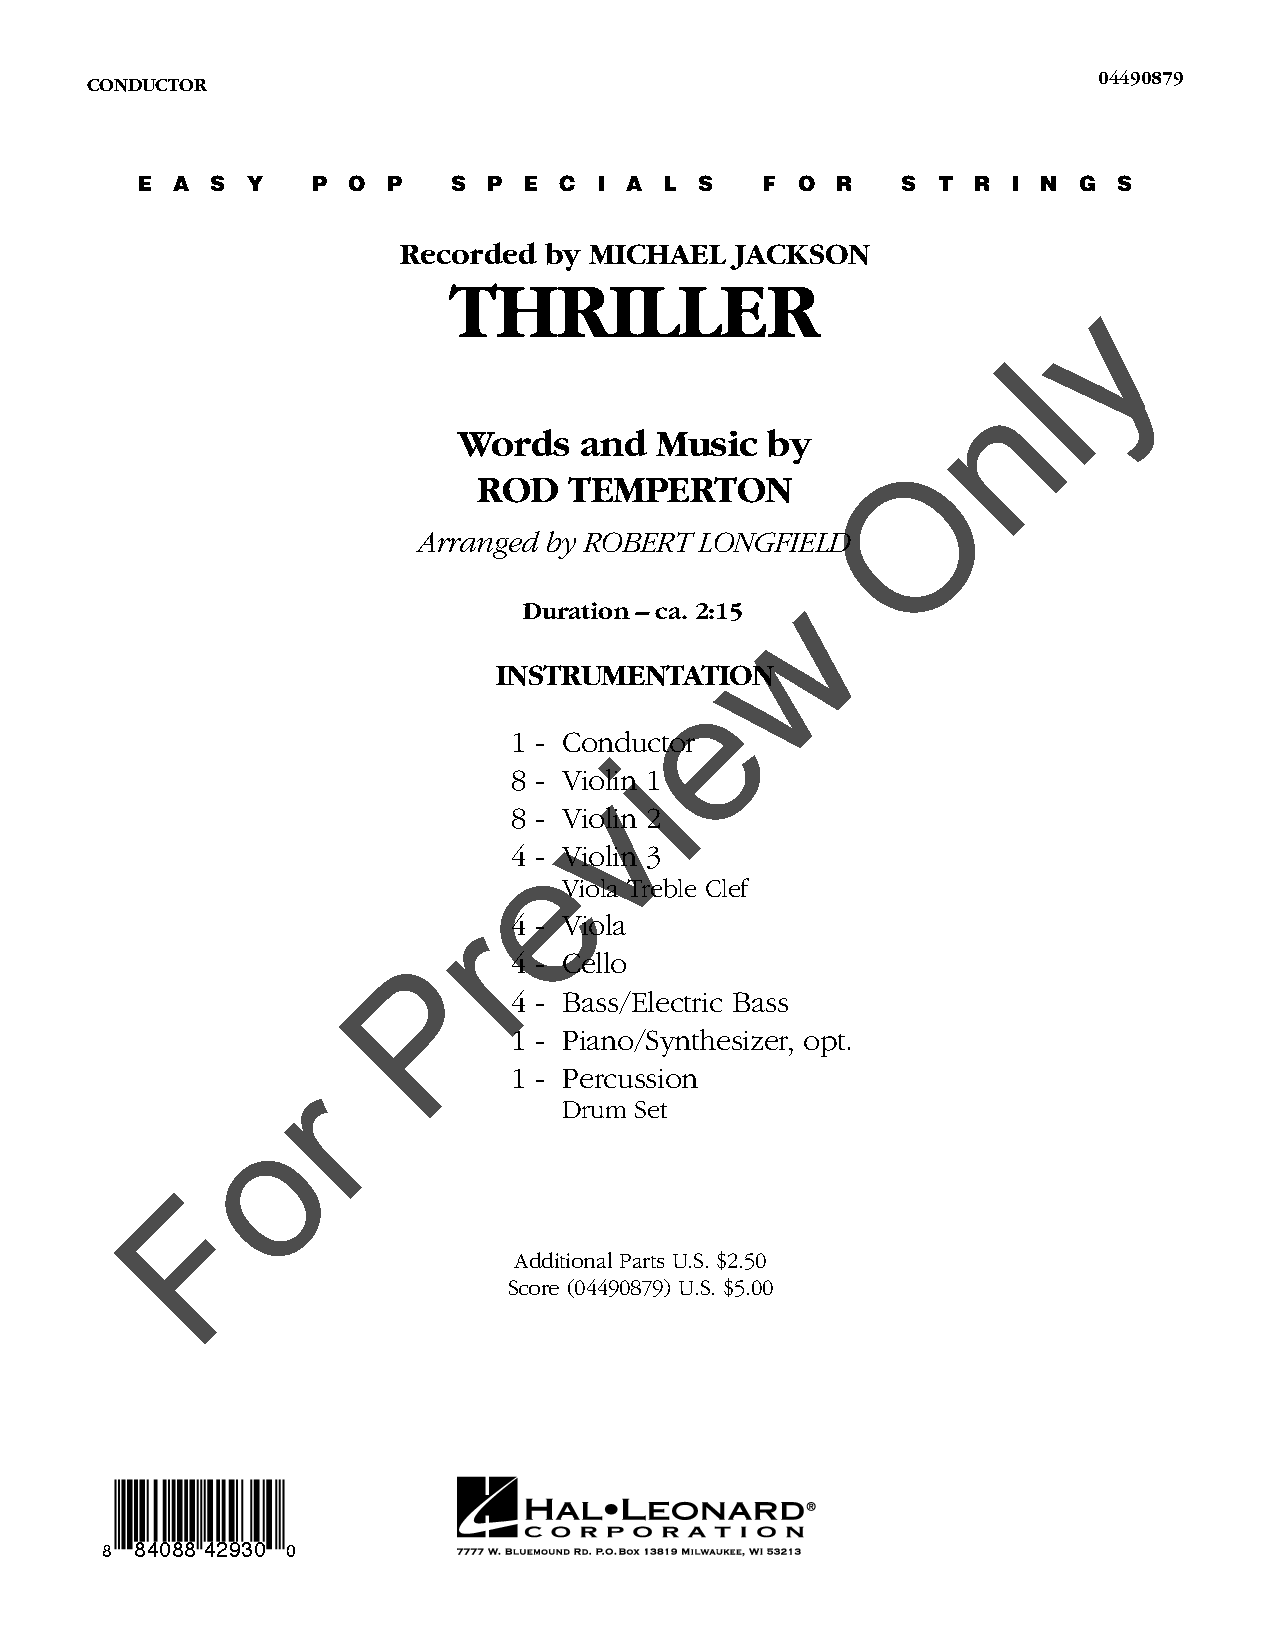 Thriller by Rod Temperton/arr  Longfield| J W  Pepper Sheet